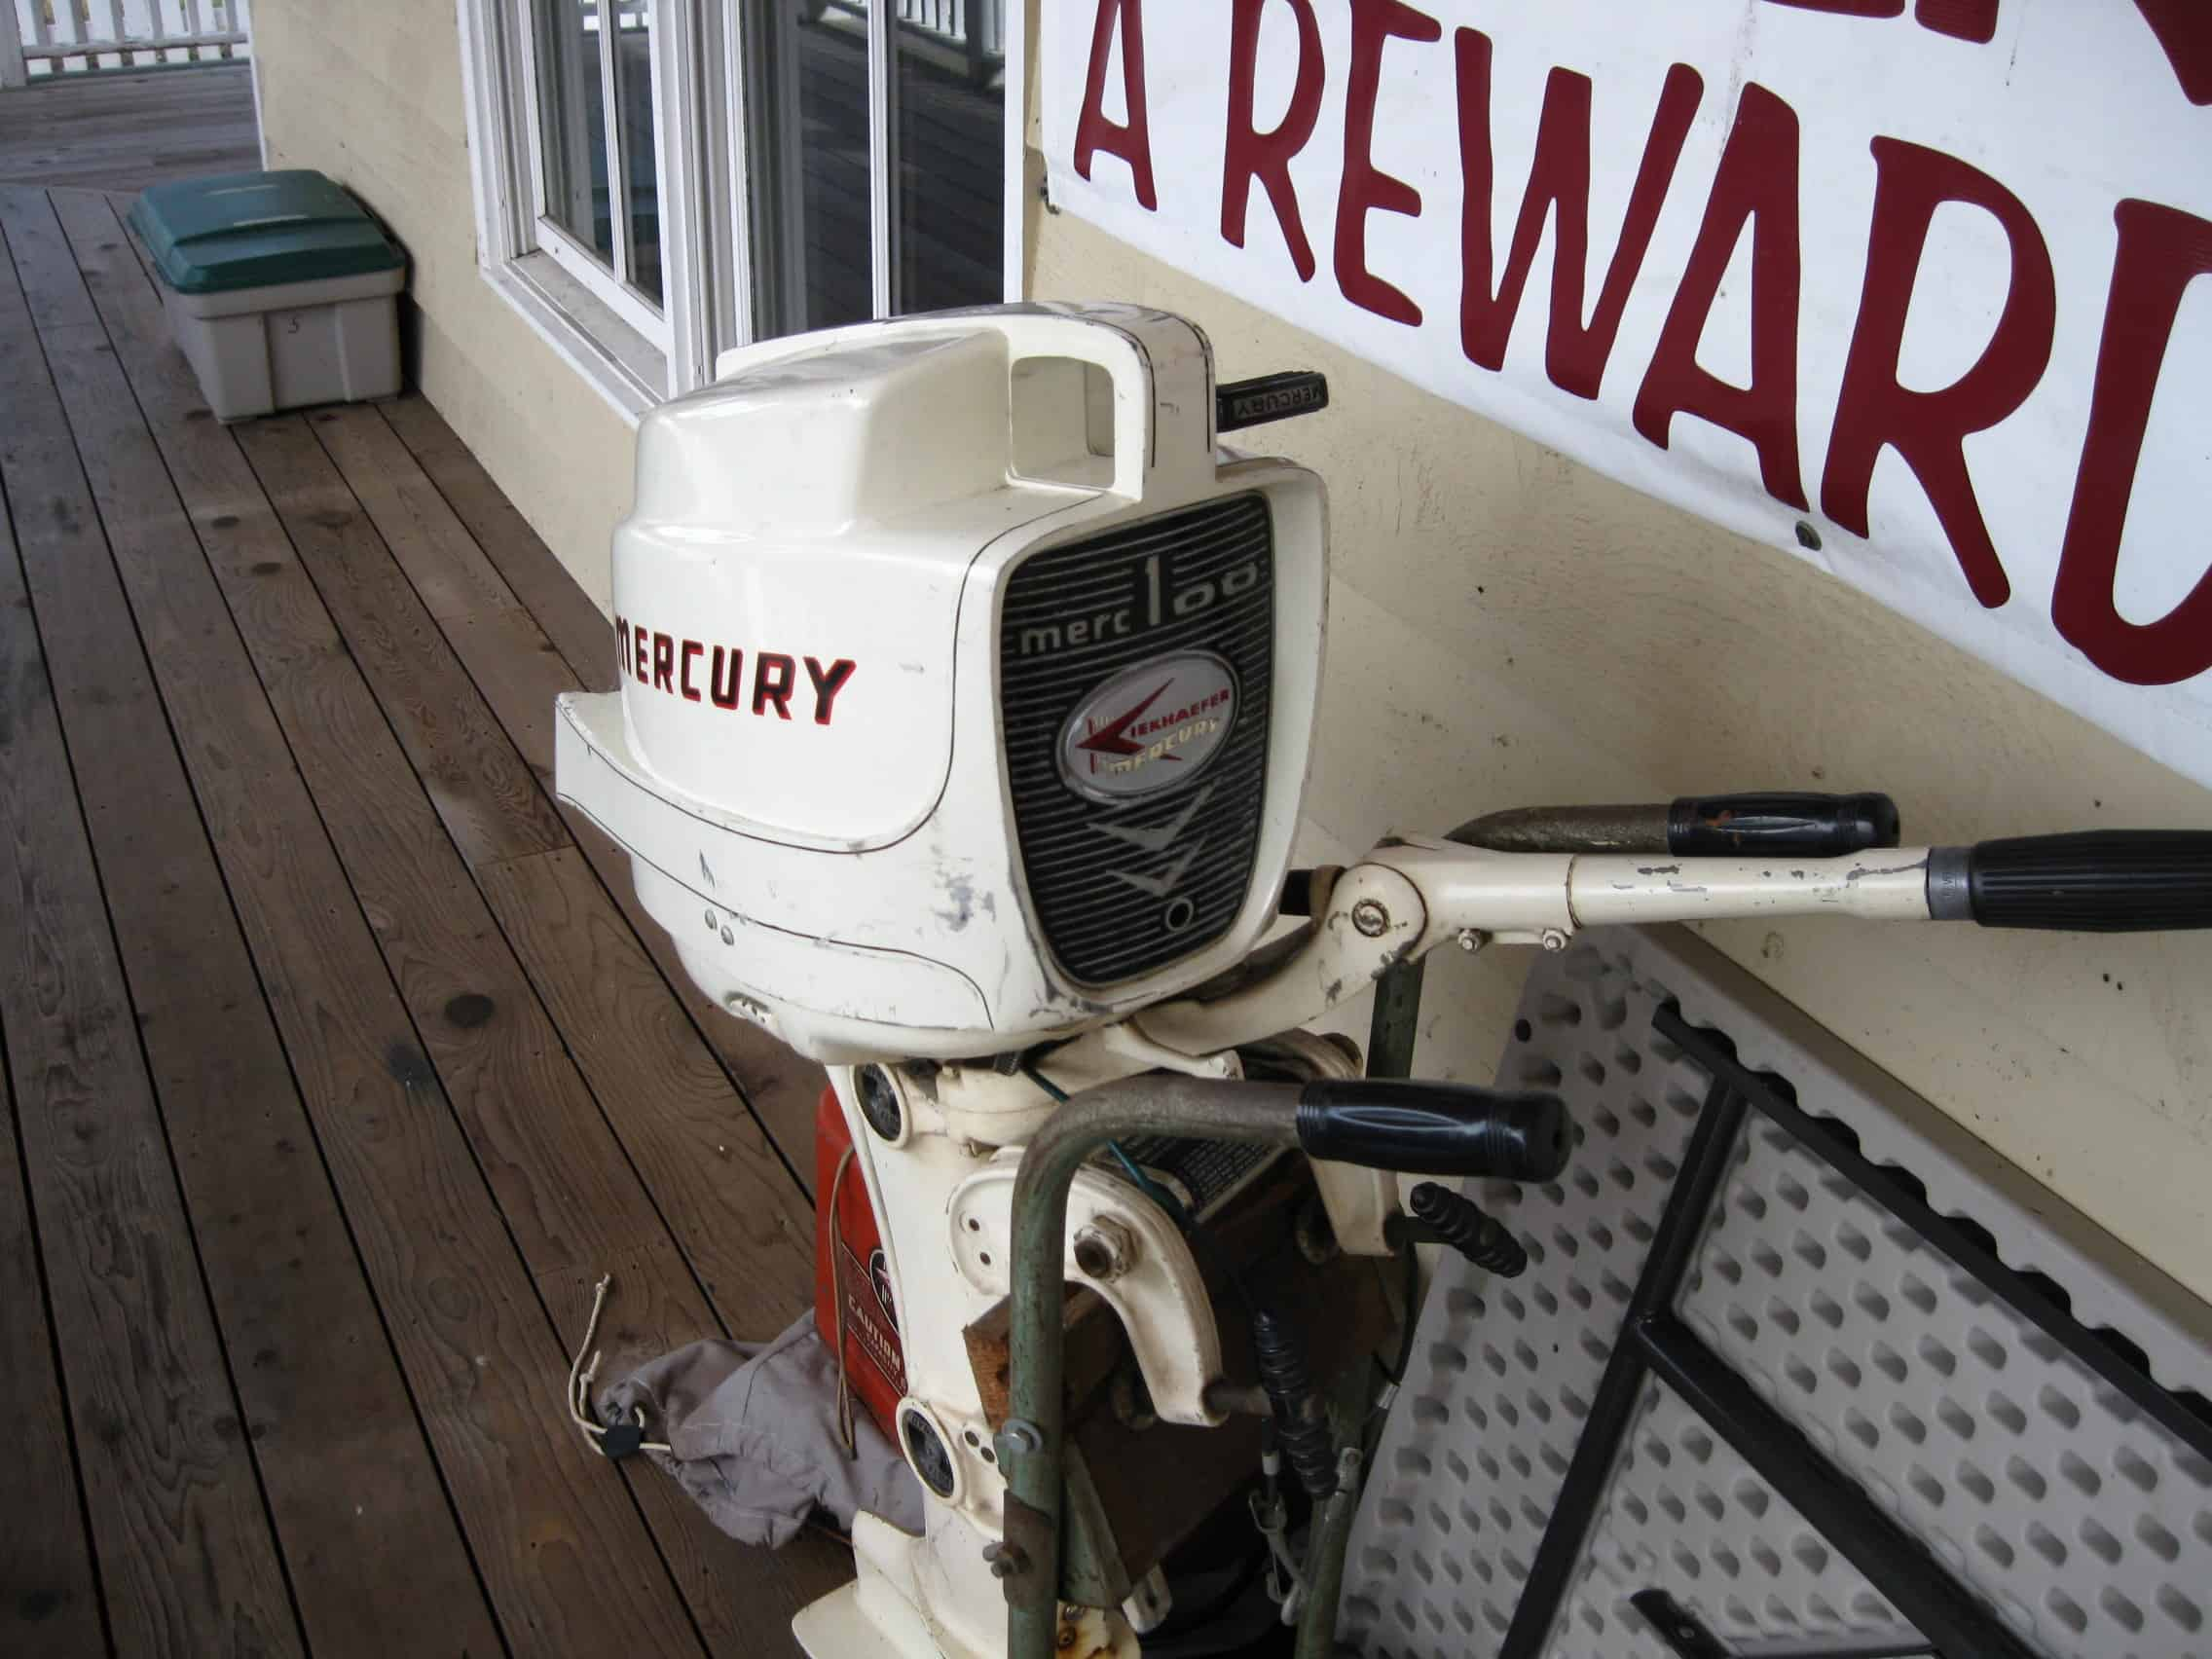 22 HP Mercury Outboard similar to one I owned as a kid